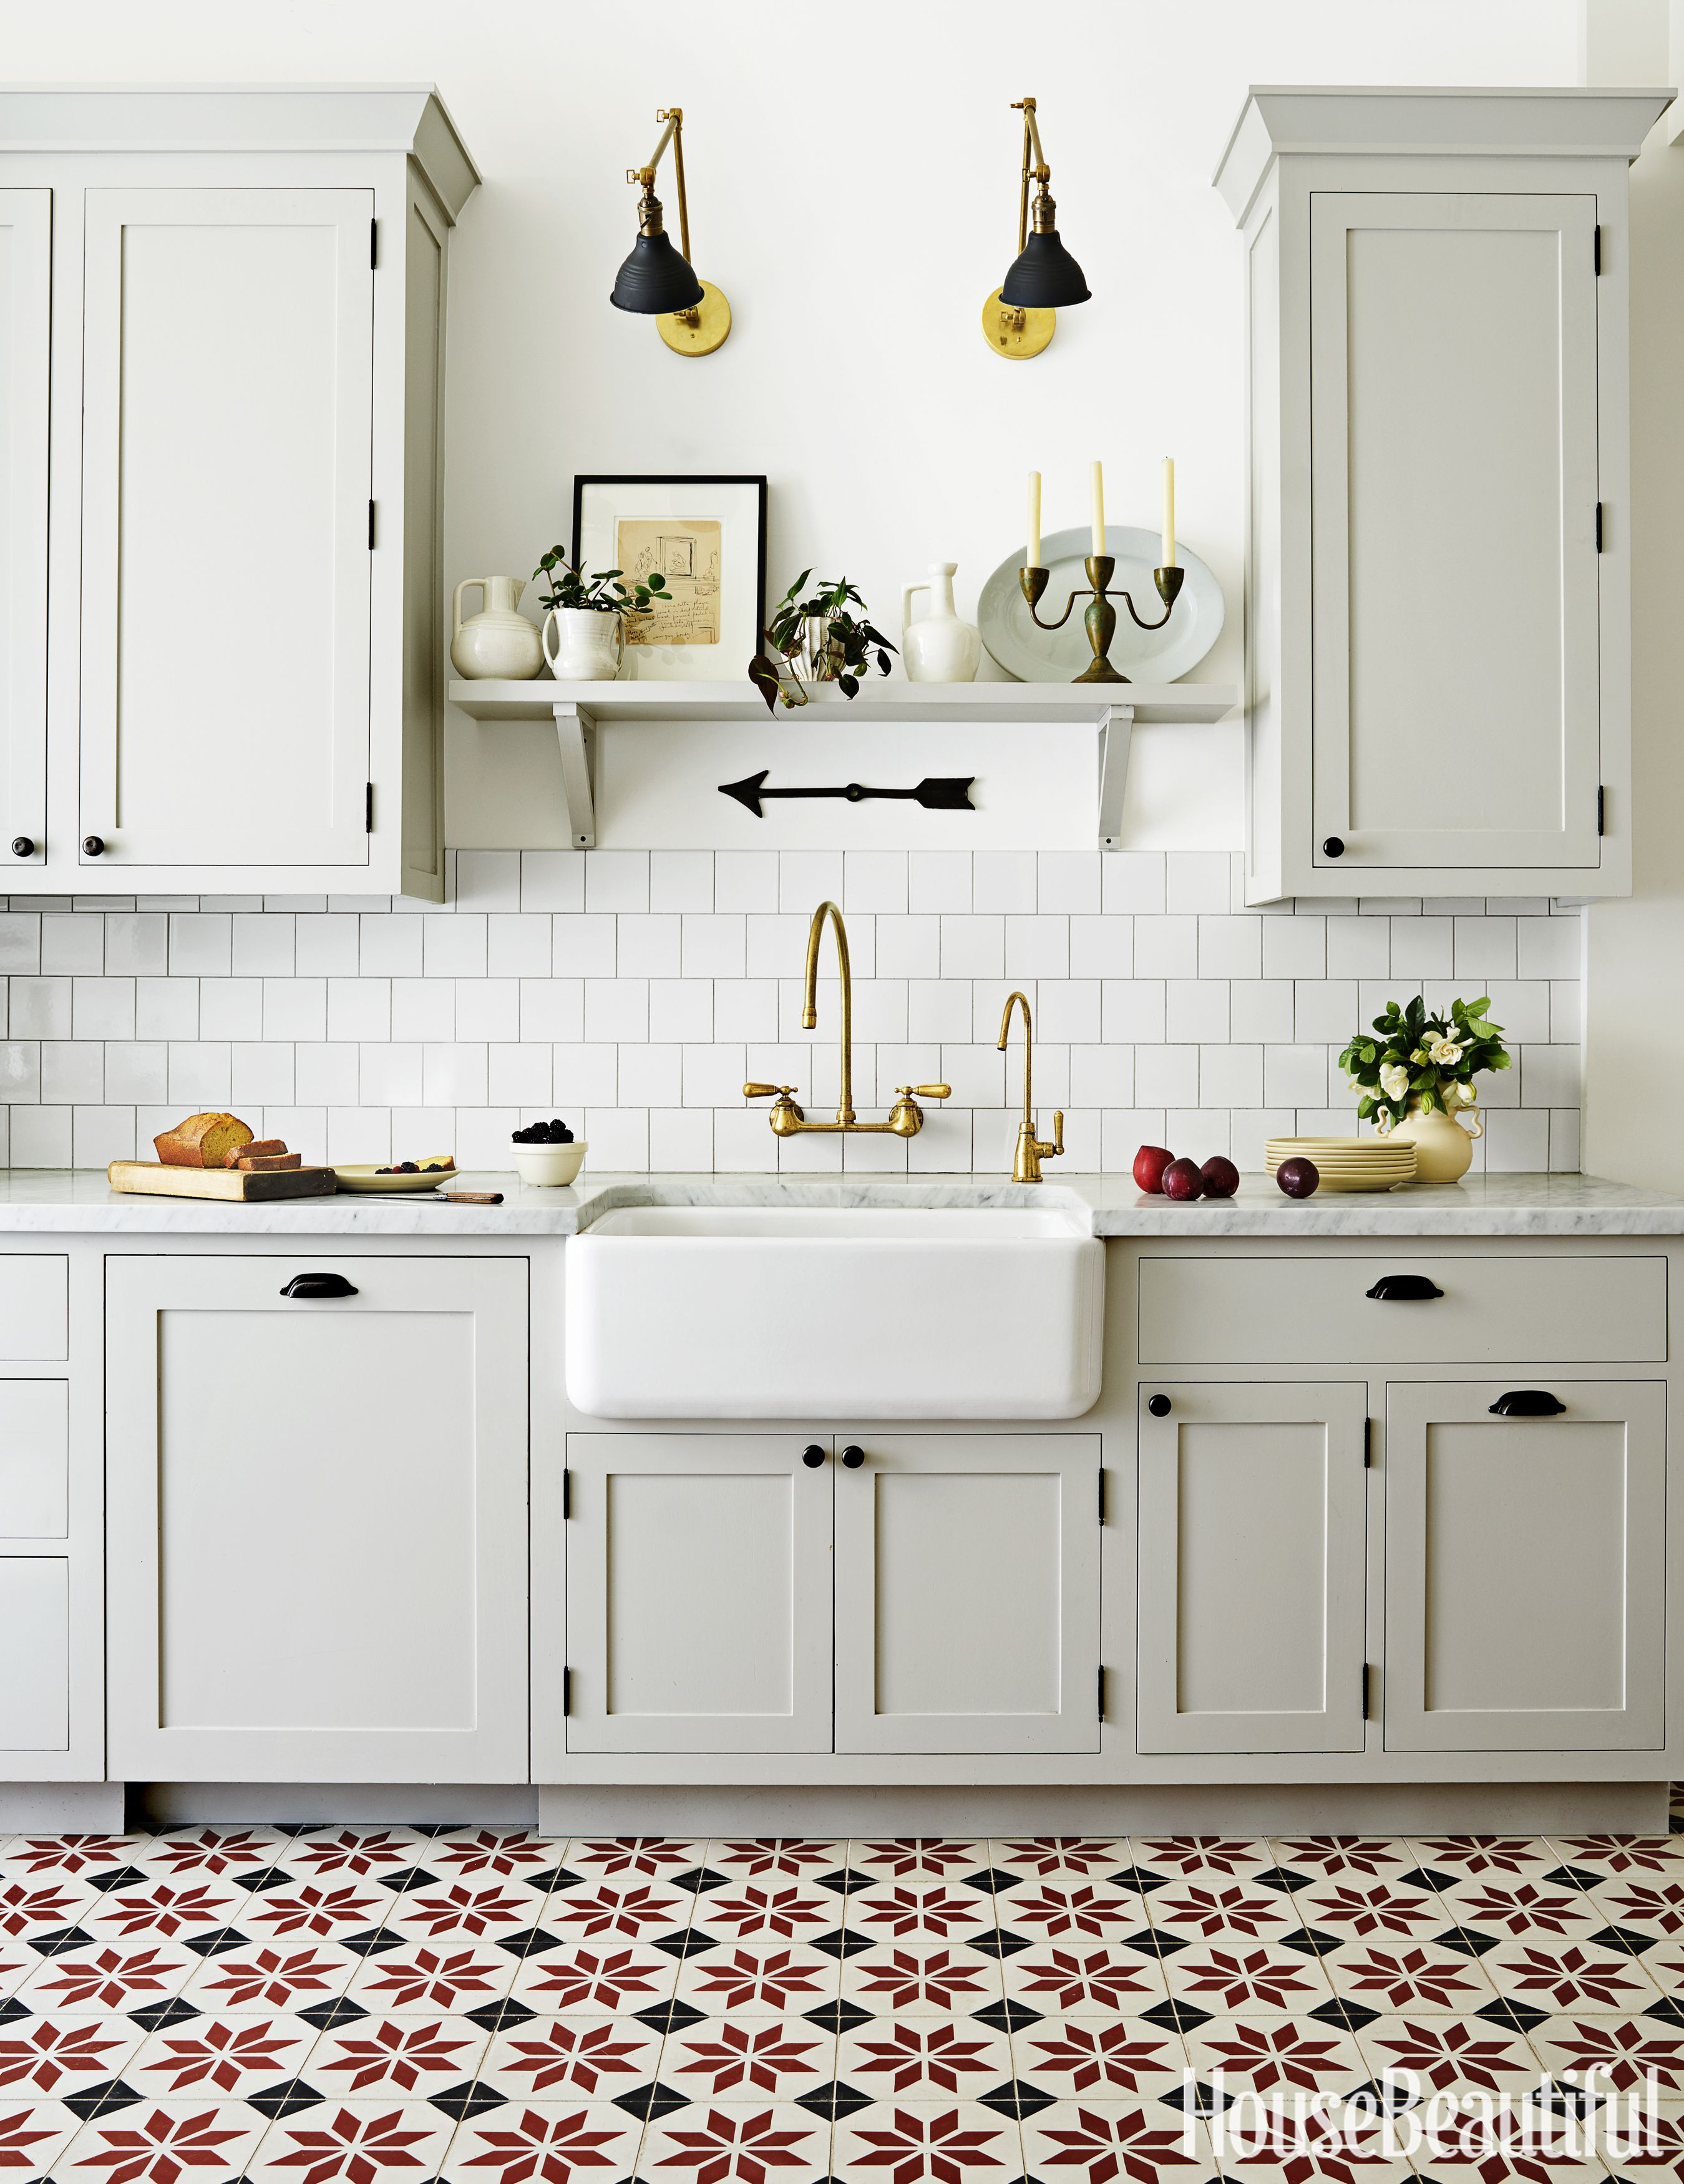 30 Small Kitchen Ideas That Maximize Style and Efficiency   Shelves on old world kitchen design ideas, old world home decor ideas, old world kitchen backsplash ideas,